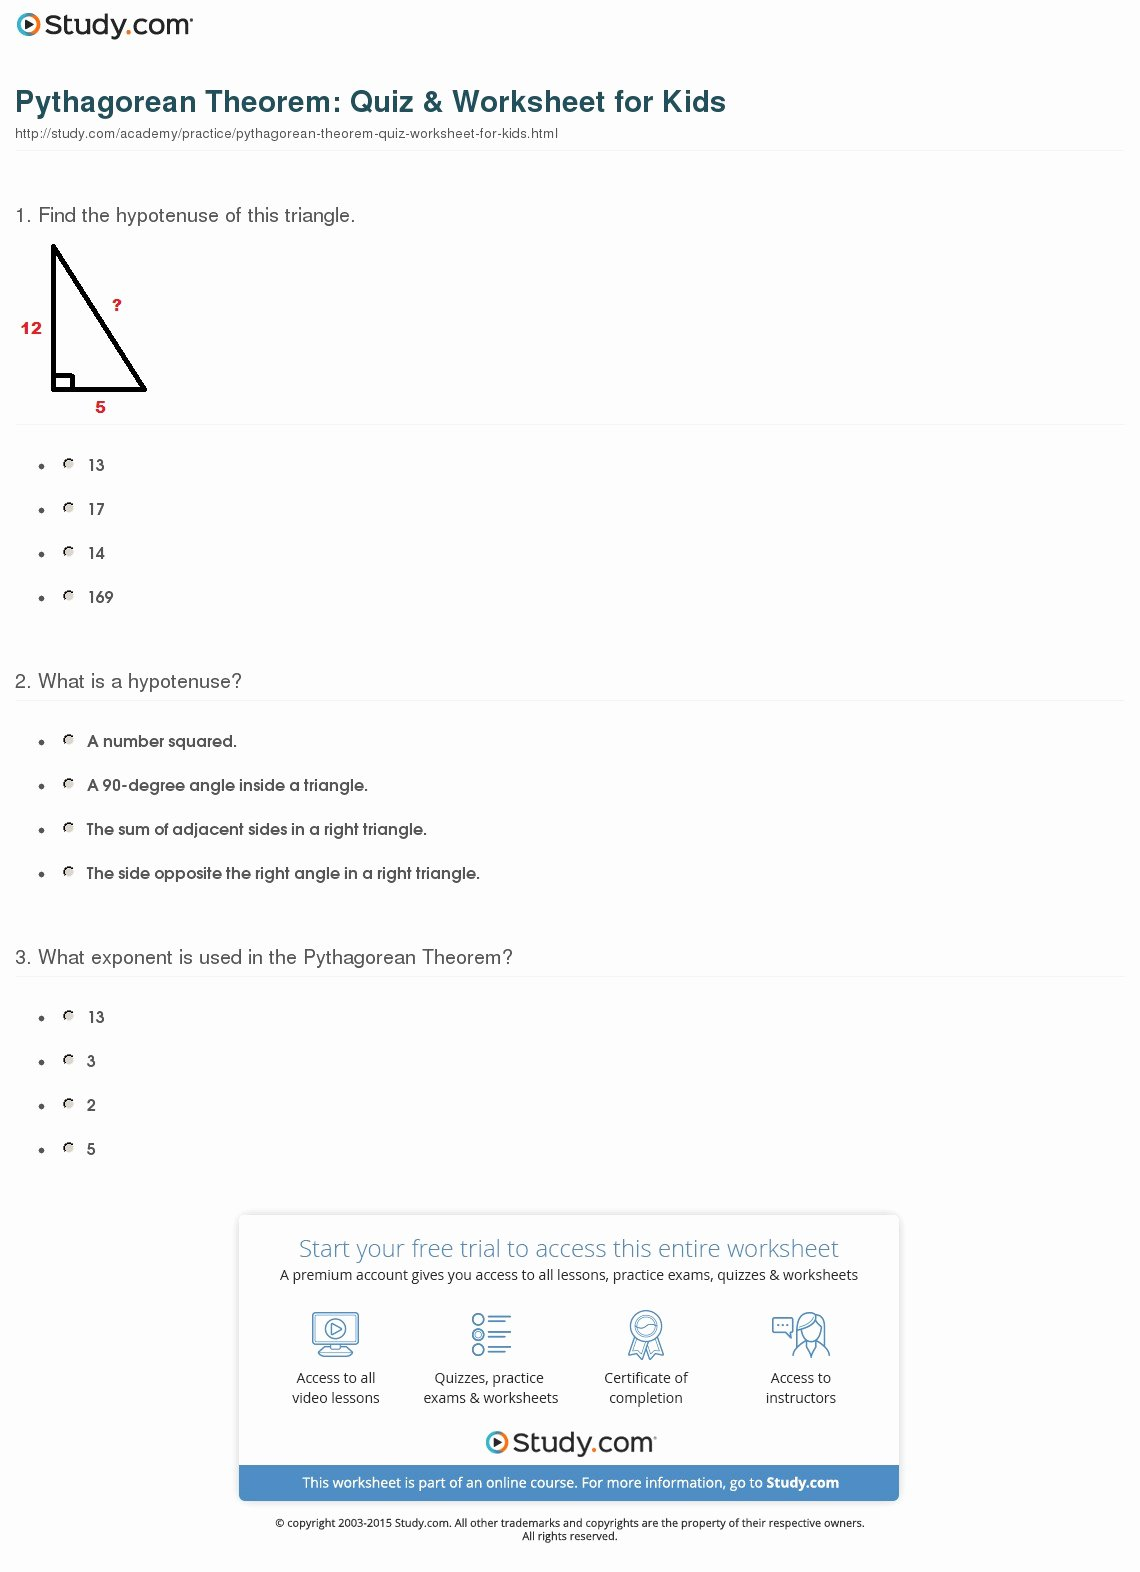 Pythagorean theorem Practice Worksheet Fresh Pythagorean theorem Quiz & Worksheet for Kids